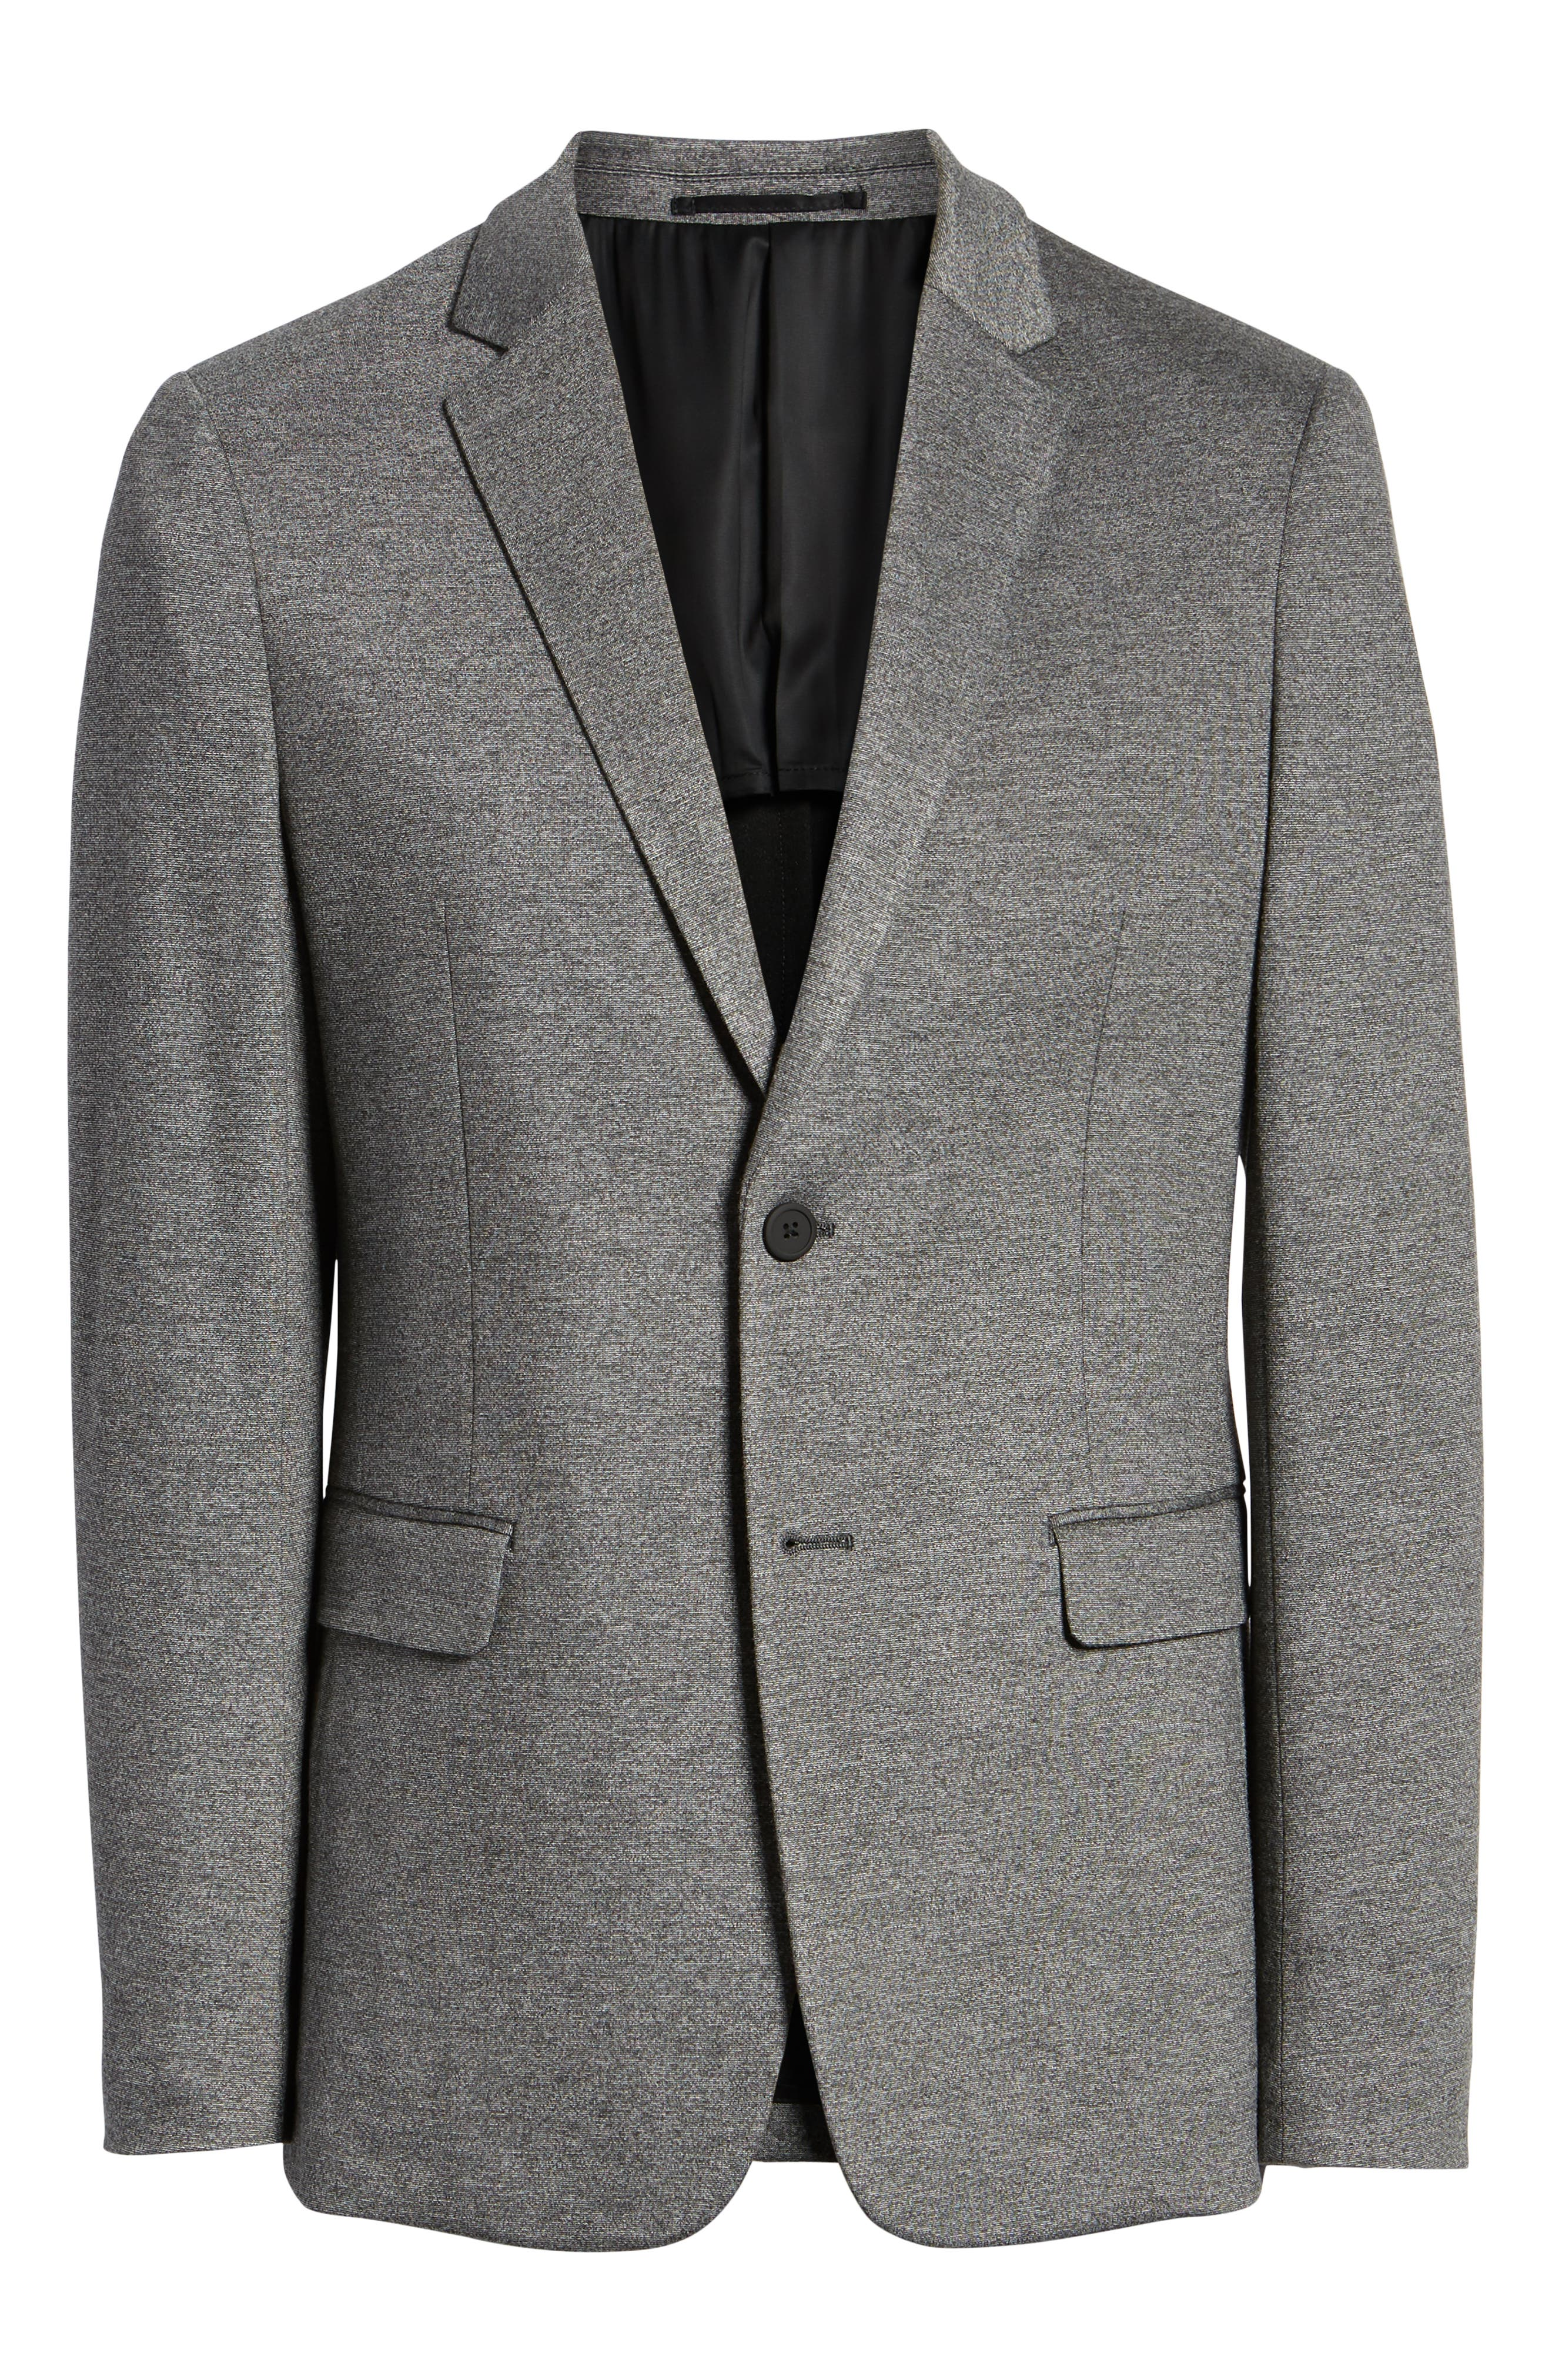 THEORY,                             Clinton Marled Ponte Sport Coat,                             Alternate thumbnail 5, color,                             004